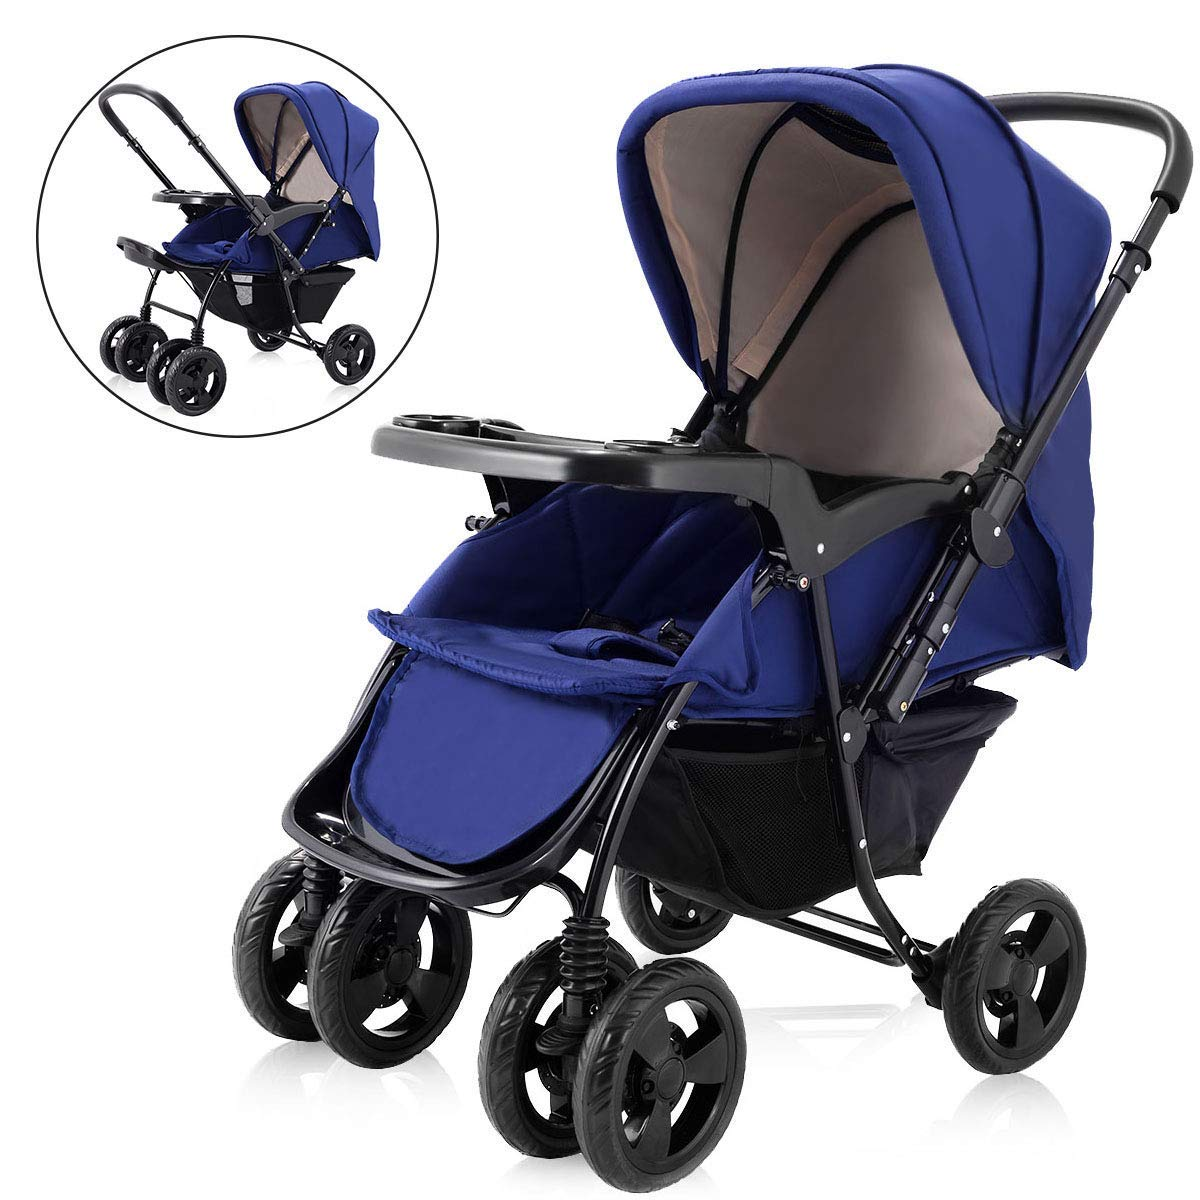 Two Way Stroller, Baby Foldable Conversable Pushchair w/ 5- Point Safety  Harness, Sleeping Cushion, Storage Basket, Free Standing by Costzon  (Sapphire